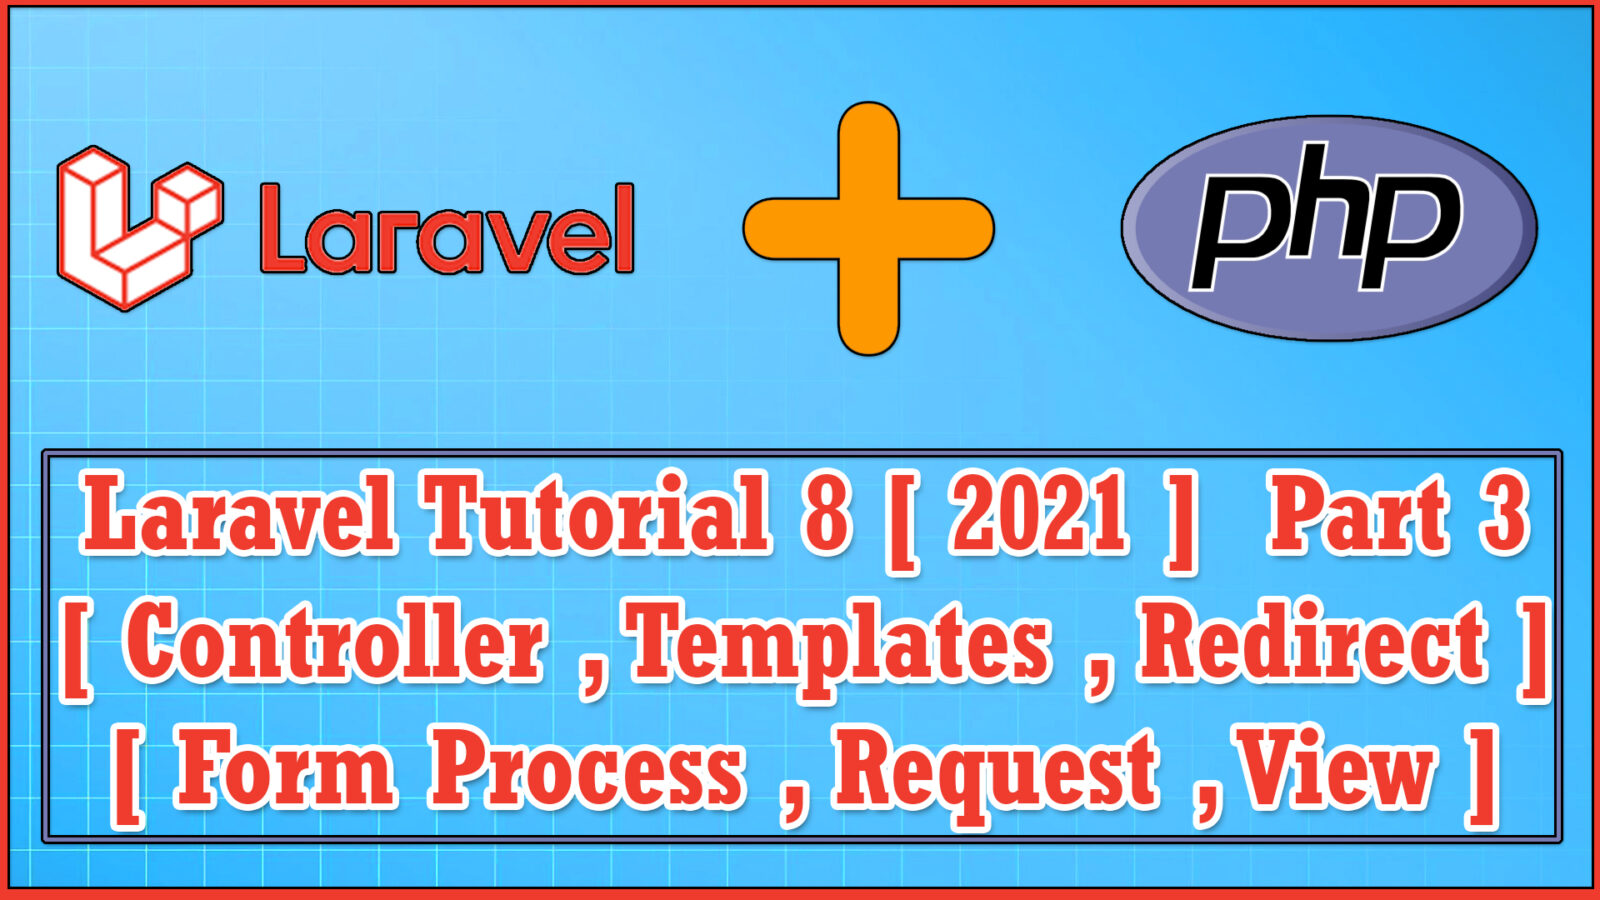 Laravel 8 (2021) PHP MVC Web framework Part 3 | Controller | Templates | View | Redirect | Request